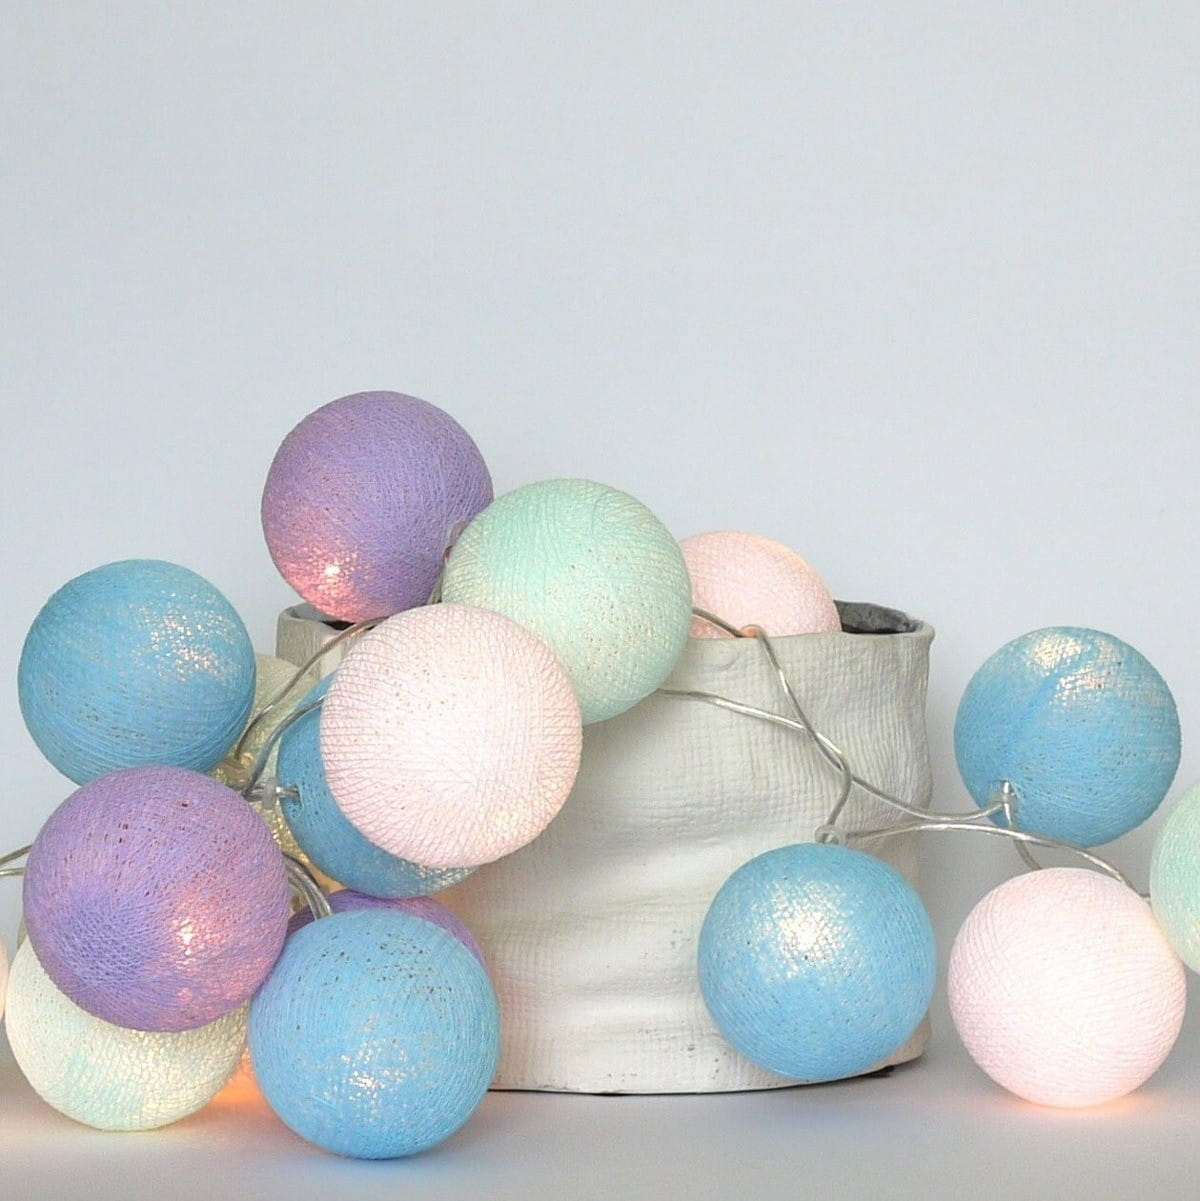 50 kul Baby Lavender Cotton Ball Lights